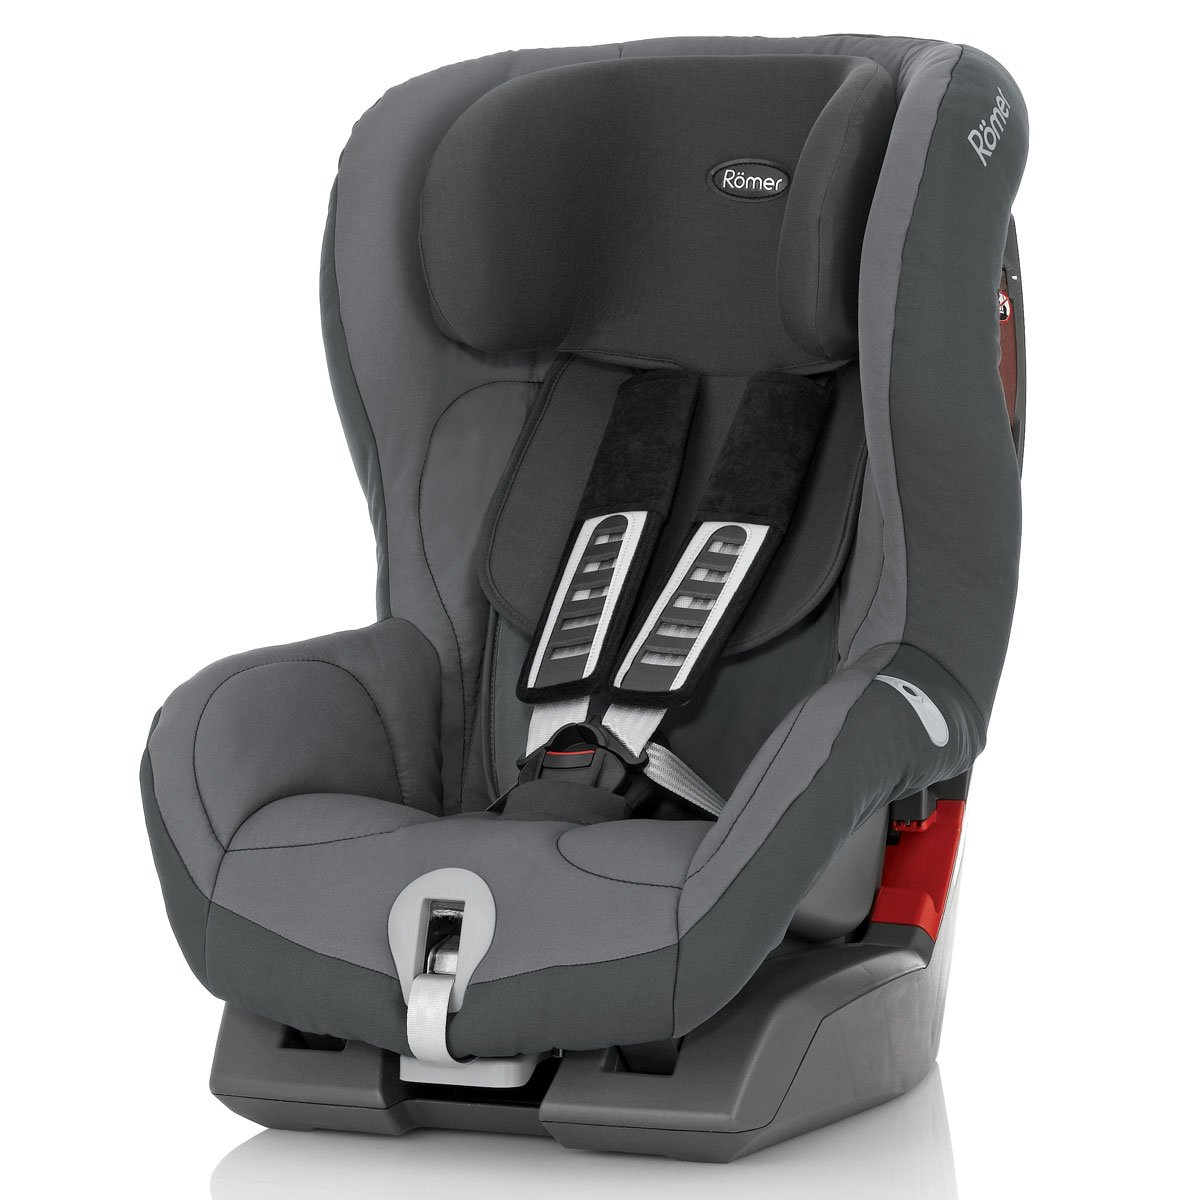 r mer king plus children 39 s car seat 2013 various designs. Black Bedroom Furniture Sets. Home Design Ideas